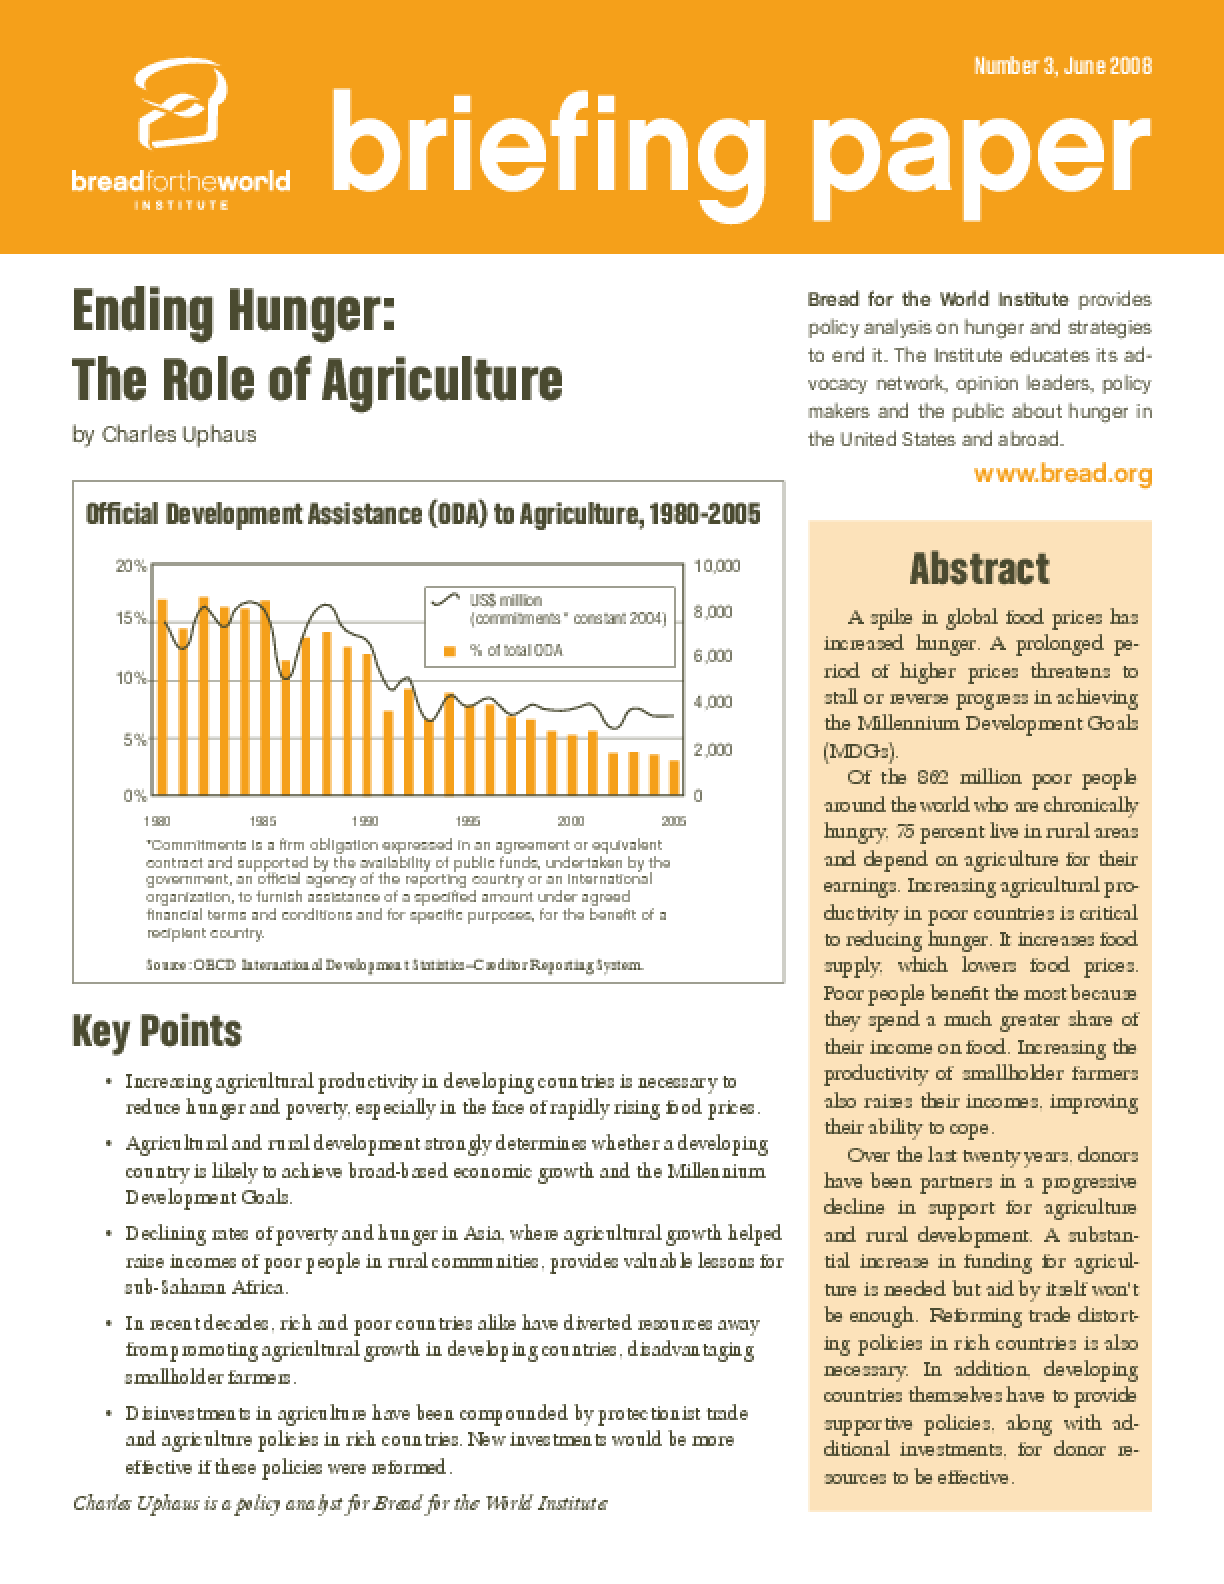 Ending Hunger: The Role of Agriculture